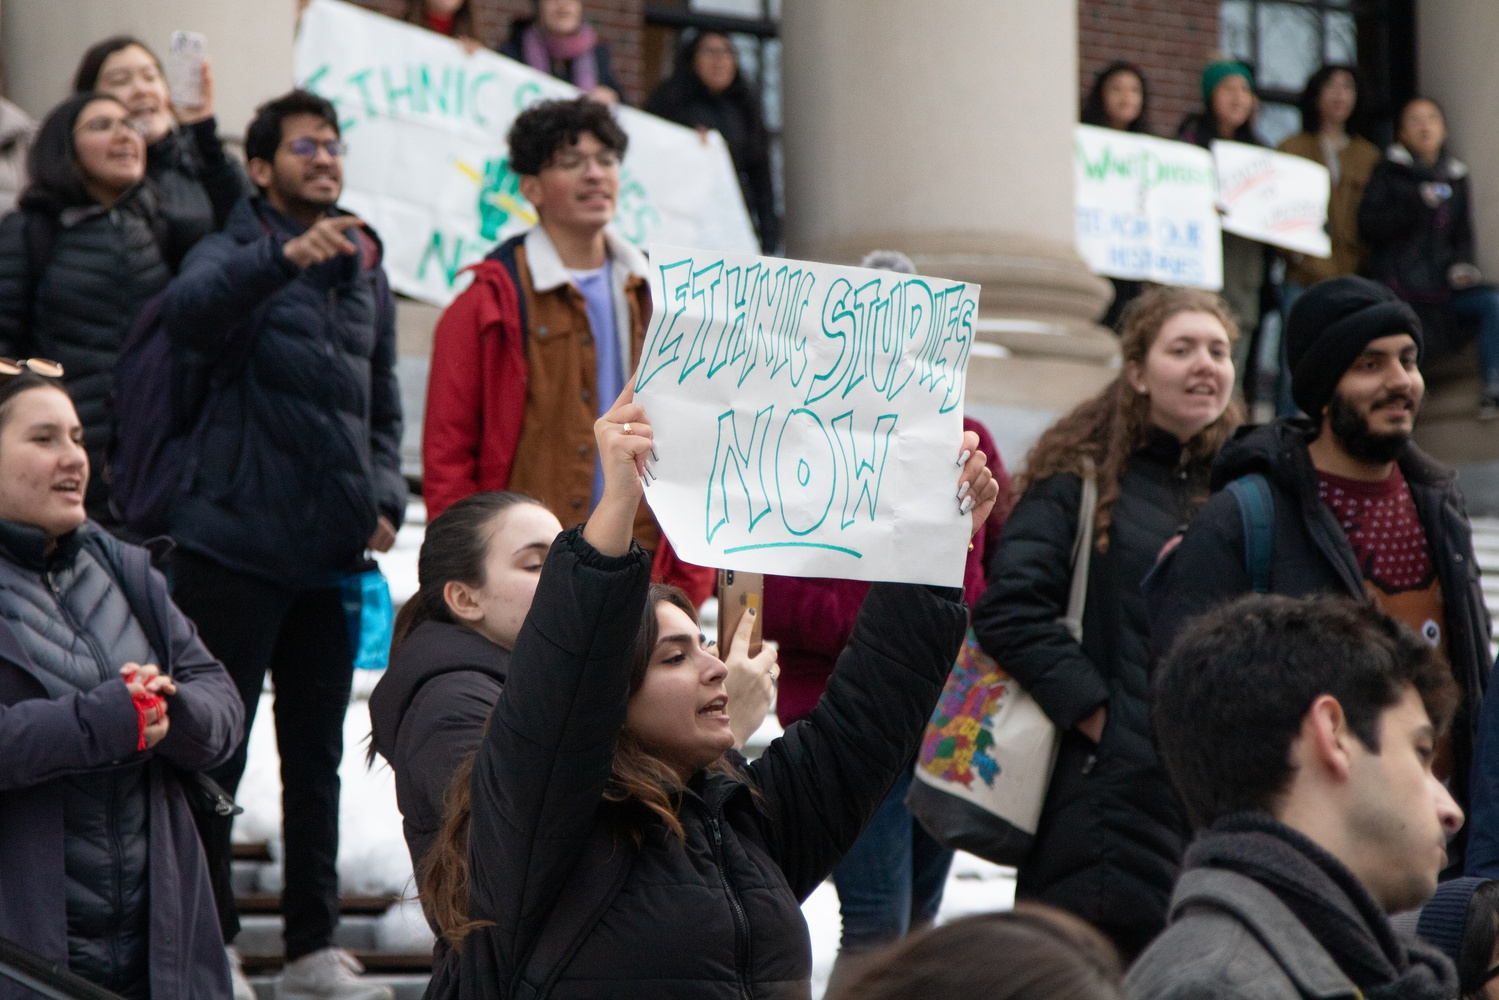 Advocates for a formalized Ethnic Studies program at Harvard rallied in front of Widener Library.